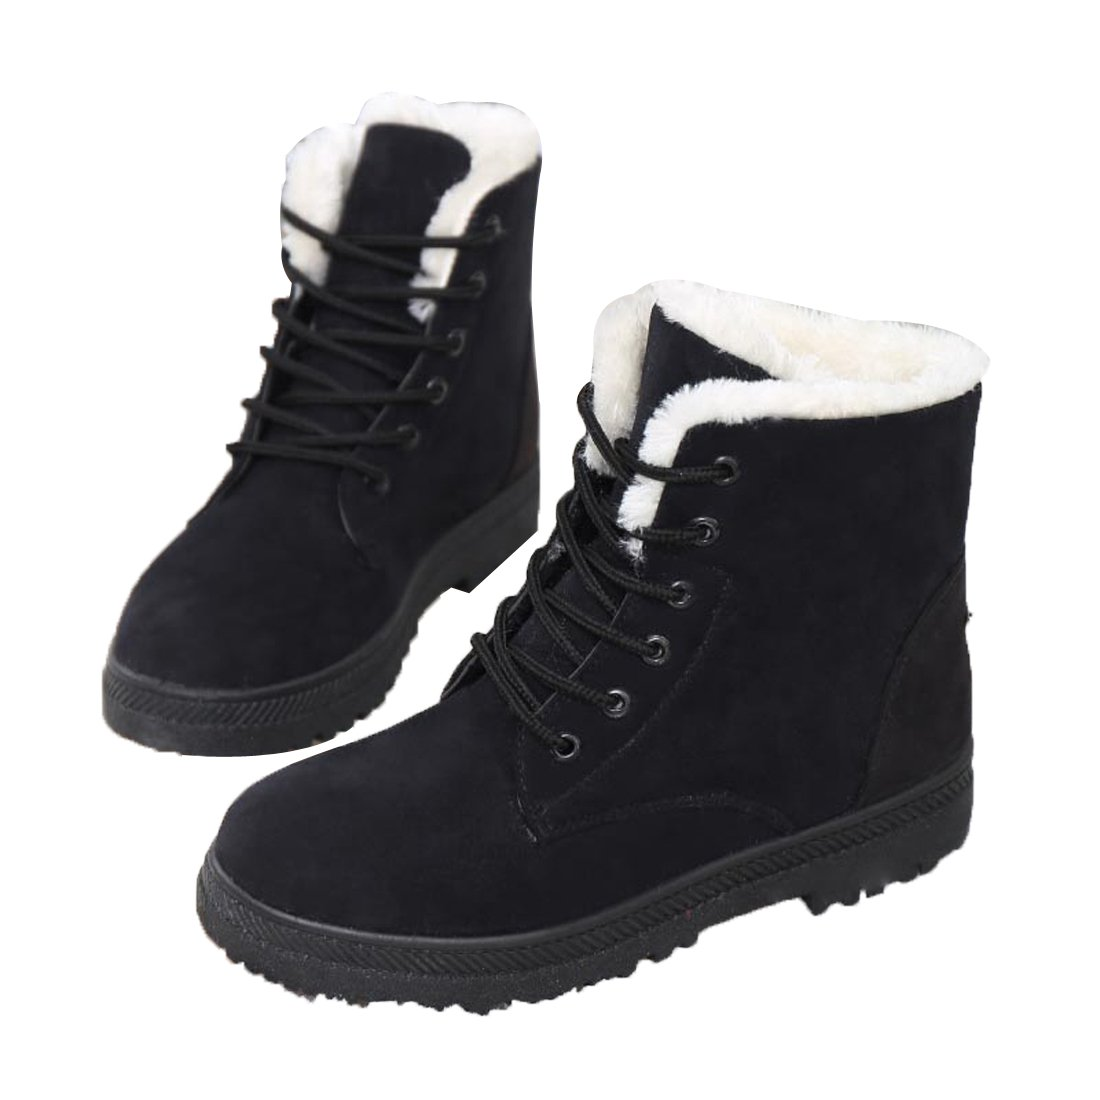 Mostrin Winter Women's Lace Up Snow Boots Waterproof Warm Fur Lined Suede Flat Short Boots